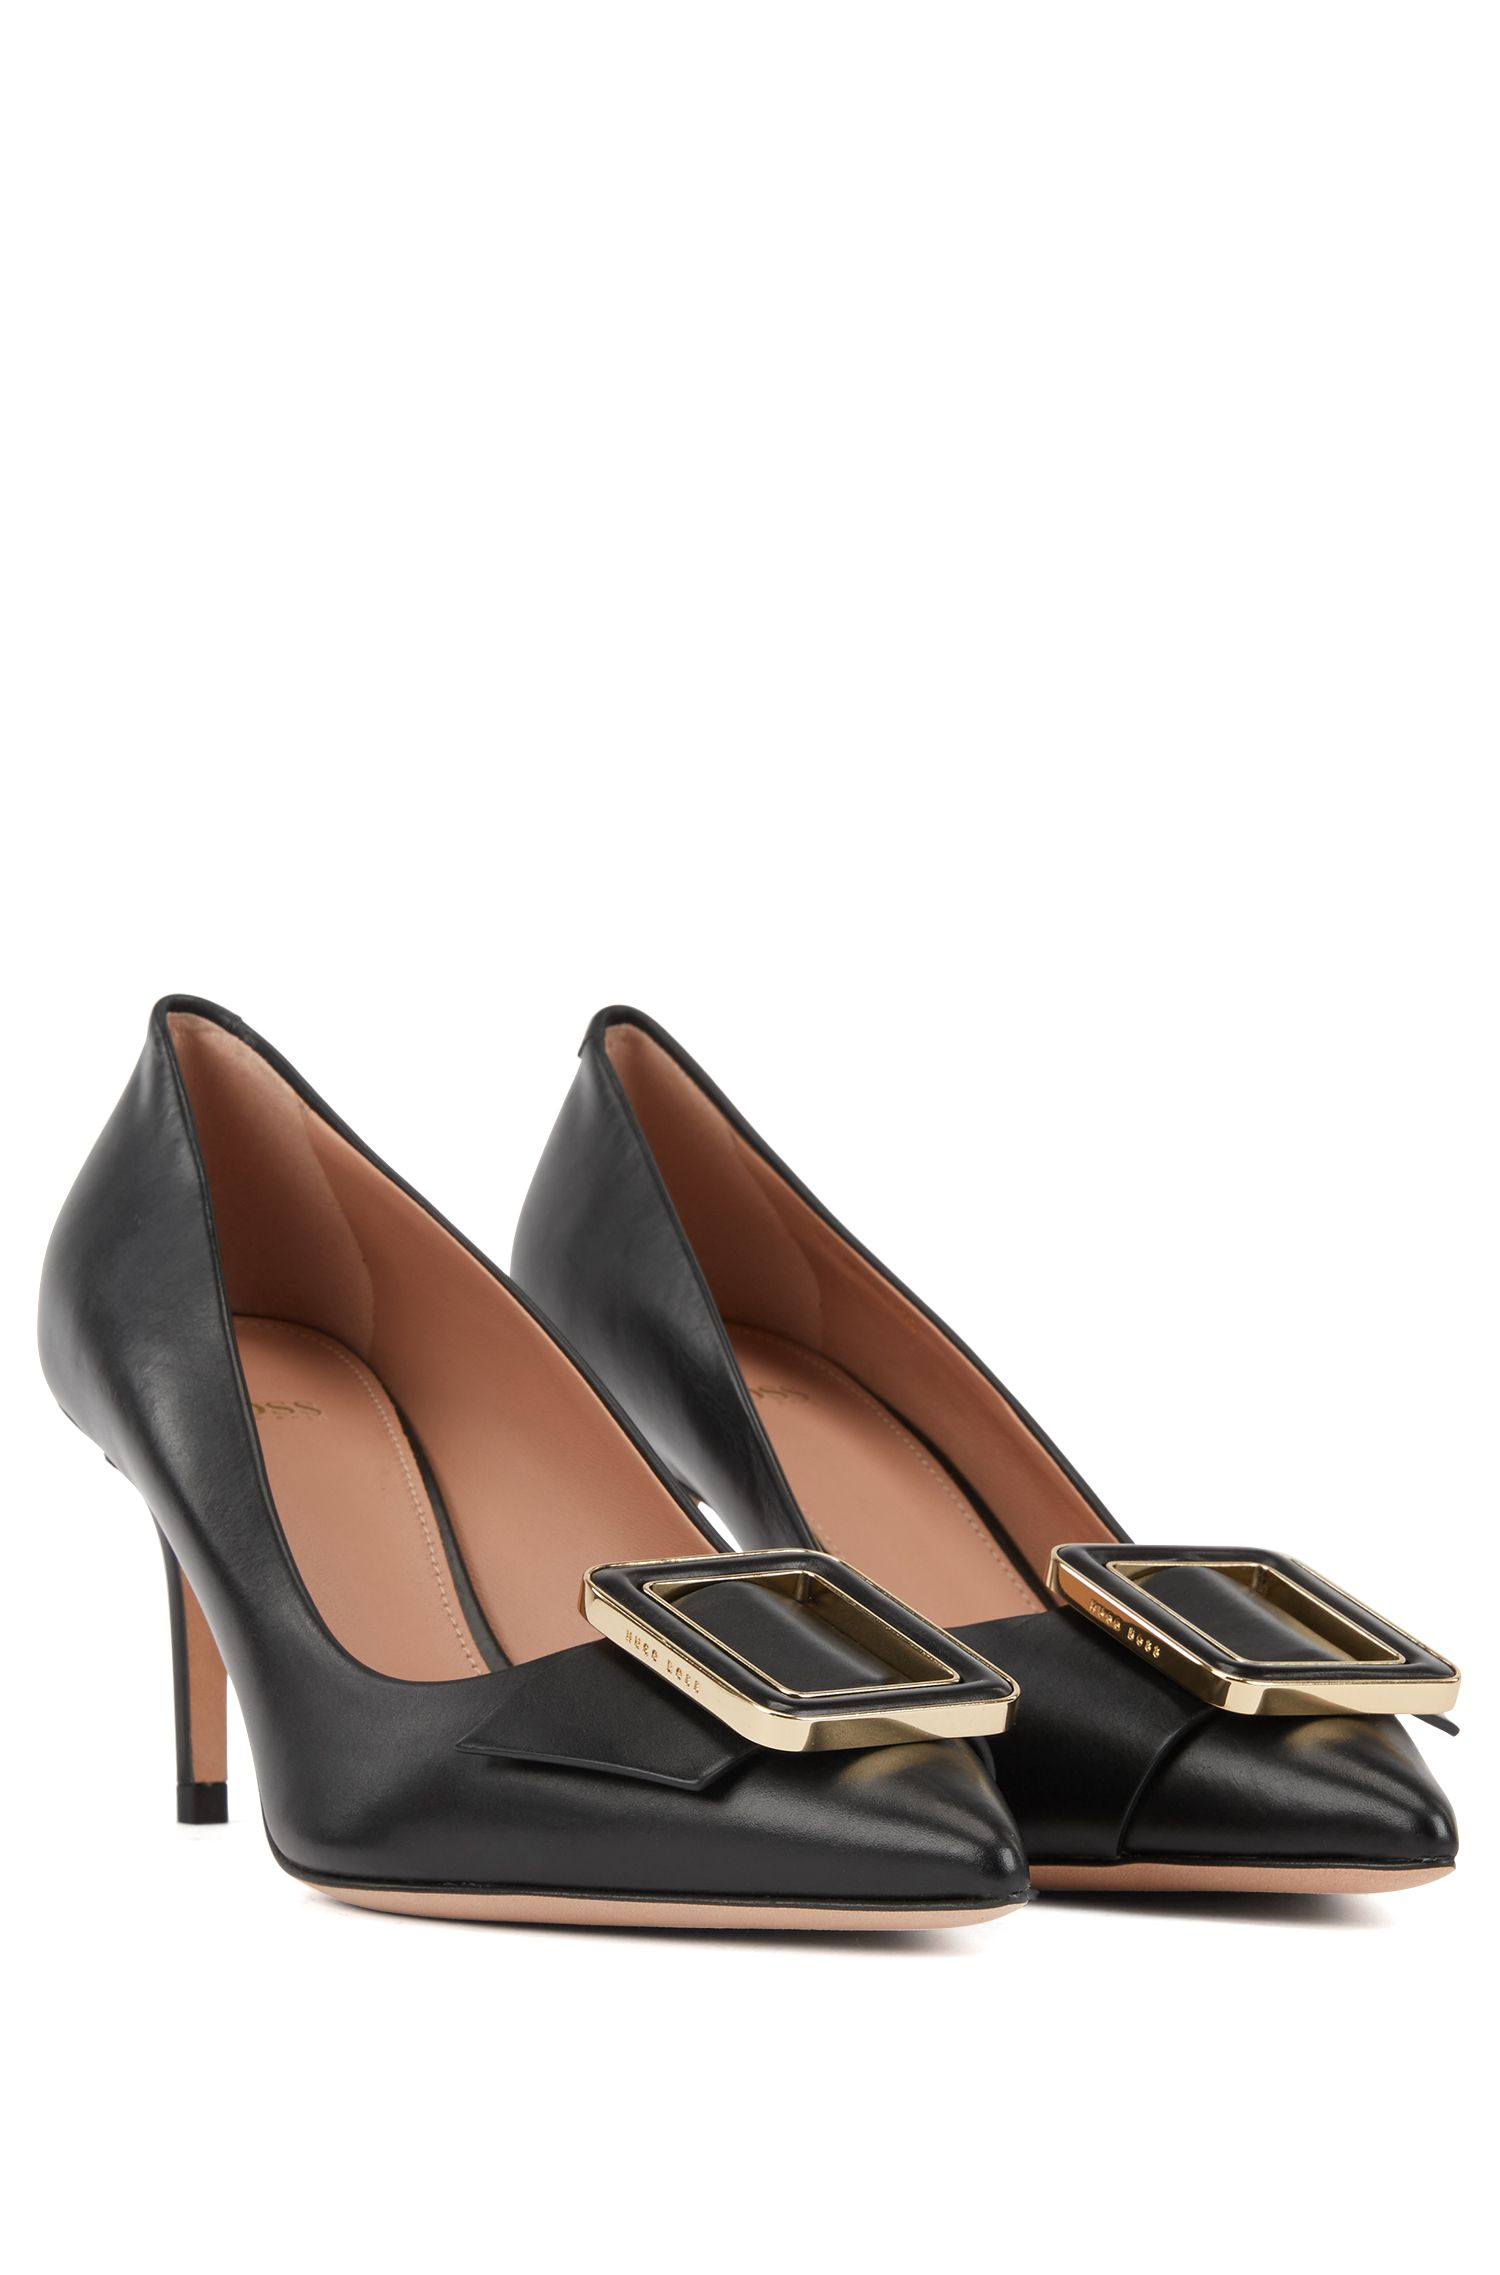 Calf-leather pumps with hardware trim, Black